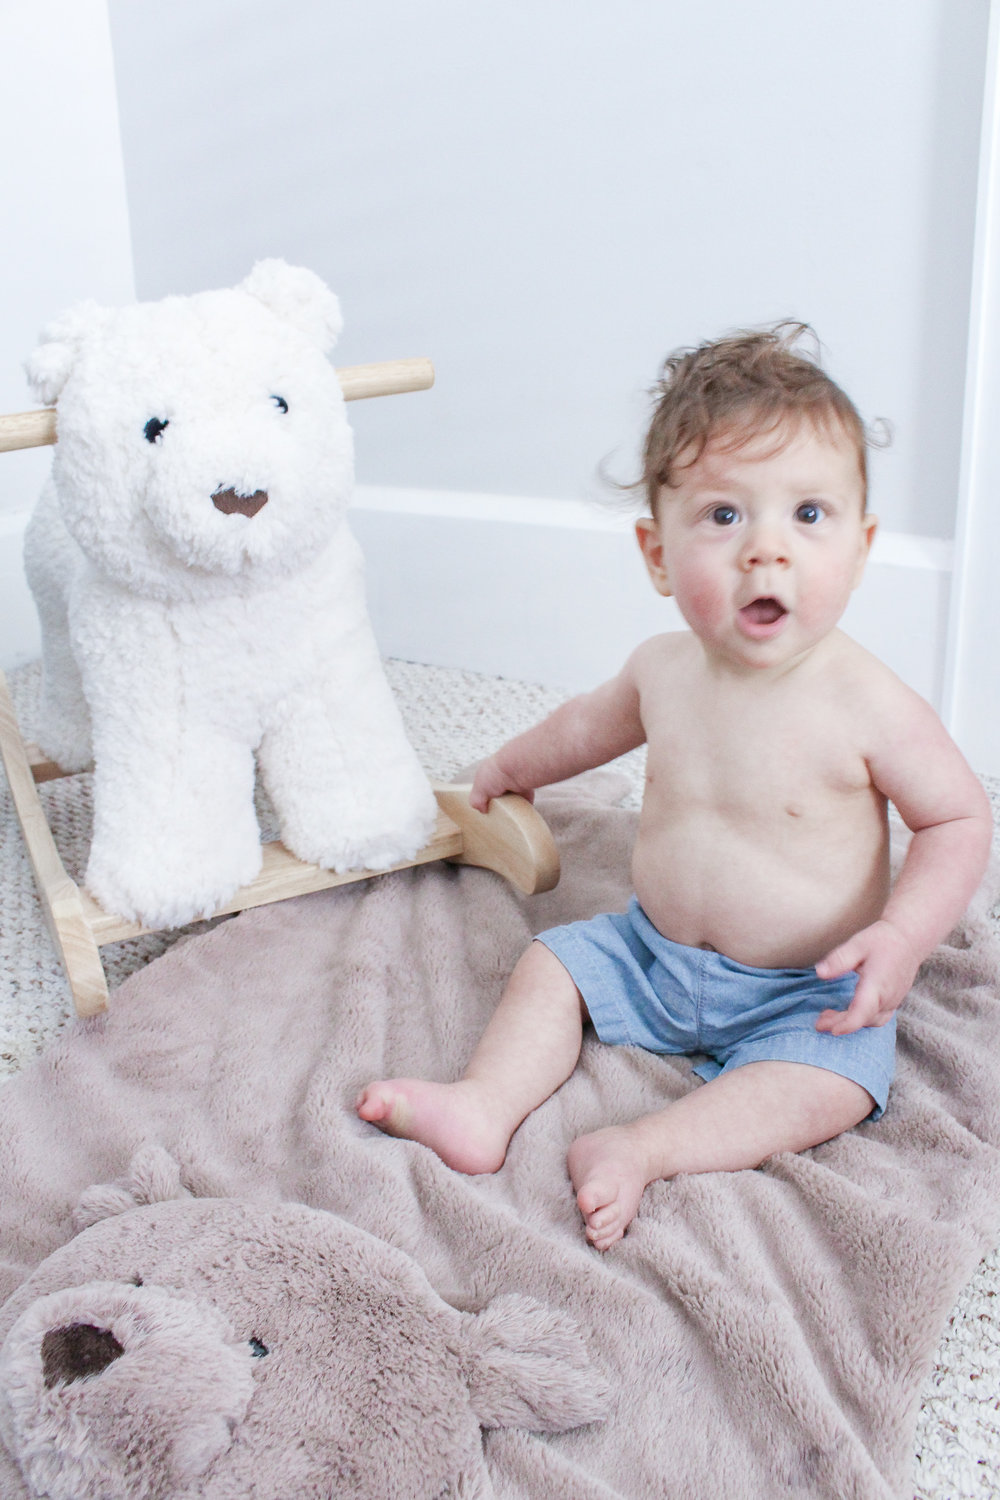 Dominic at 9 Months